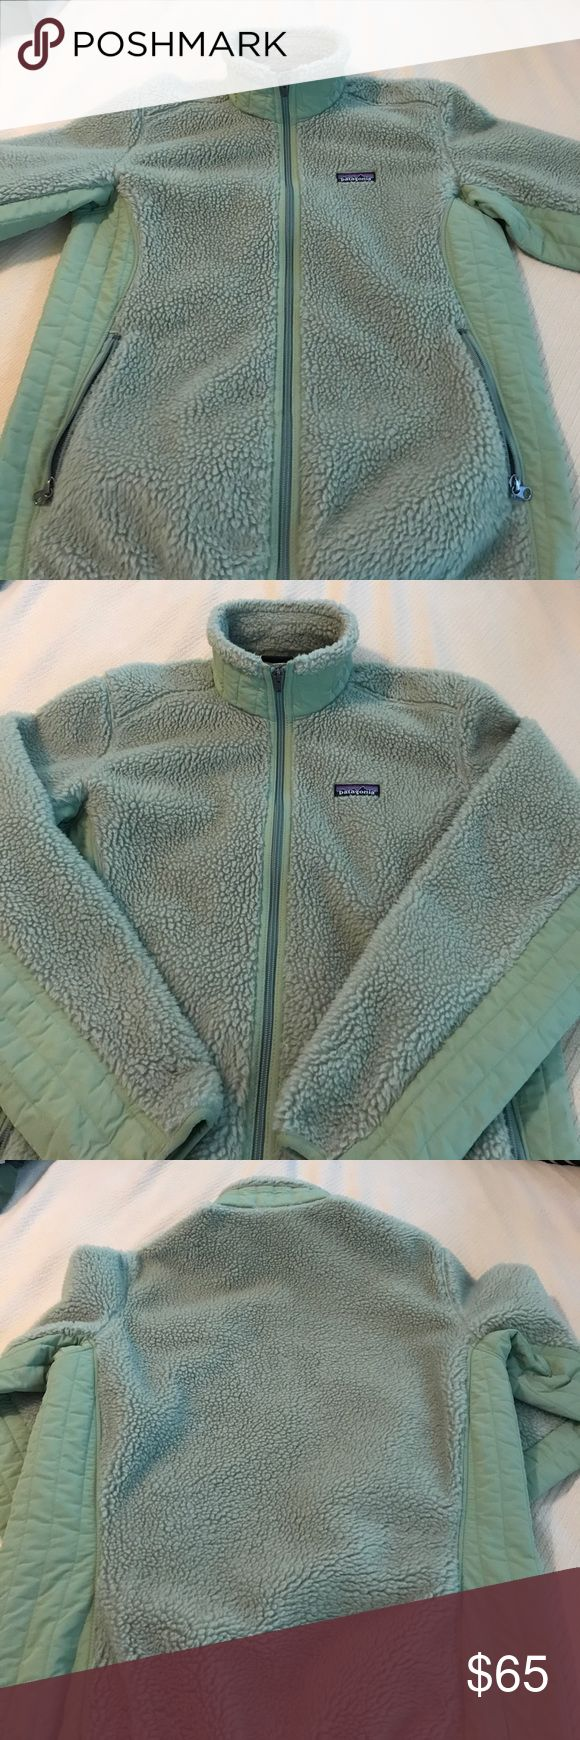 Patagonia Synchilla jacket size L Be ready for fall with this stylish, warm and comfortable jacket. Mossy Green Patagonia fleece size L. EUC. All zippers work, no stains or hard parts of fleece. Only worn a handful of times. Patagonia Jackets & Coats